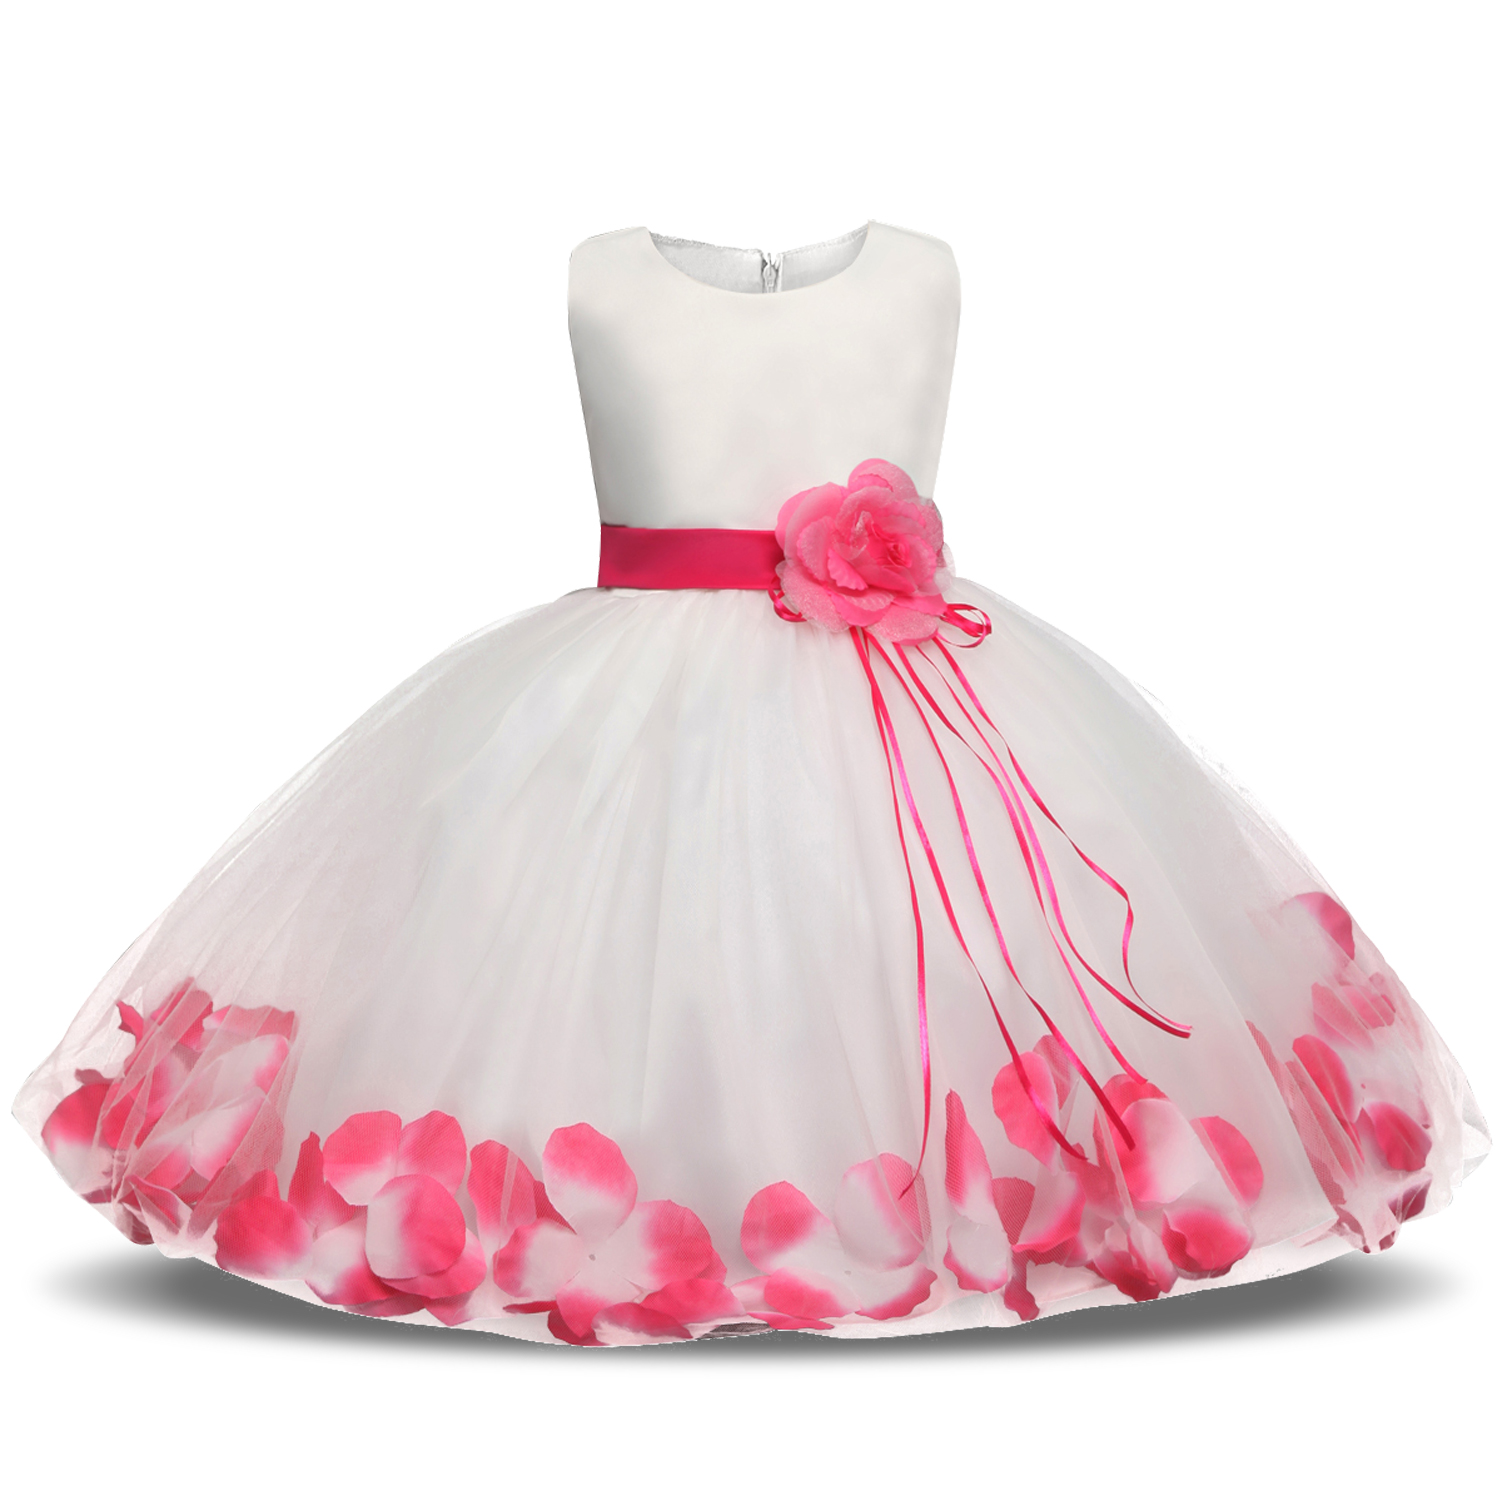 Princess Girl Dress Flower Party Kids TuTu Dress For Girls Clothes  Wedding Birthday Dresses Girls Costumes Christmas Clothing new cinderella princess girl dress kids christmas dresses costume for girls party crown necklace fantasia dress kids clothes